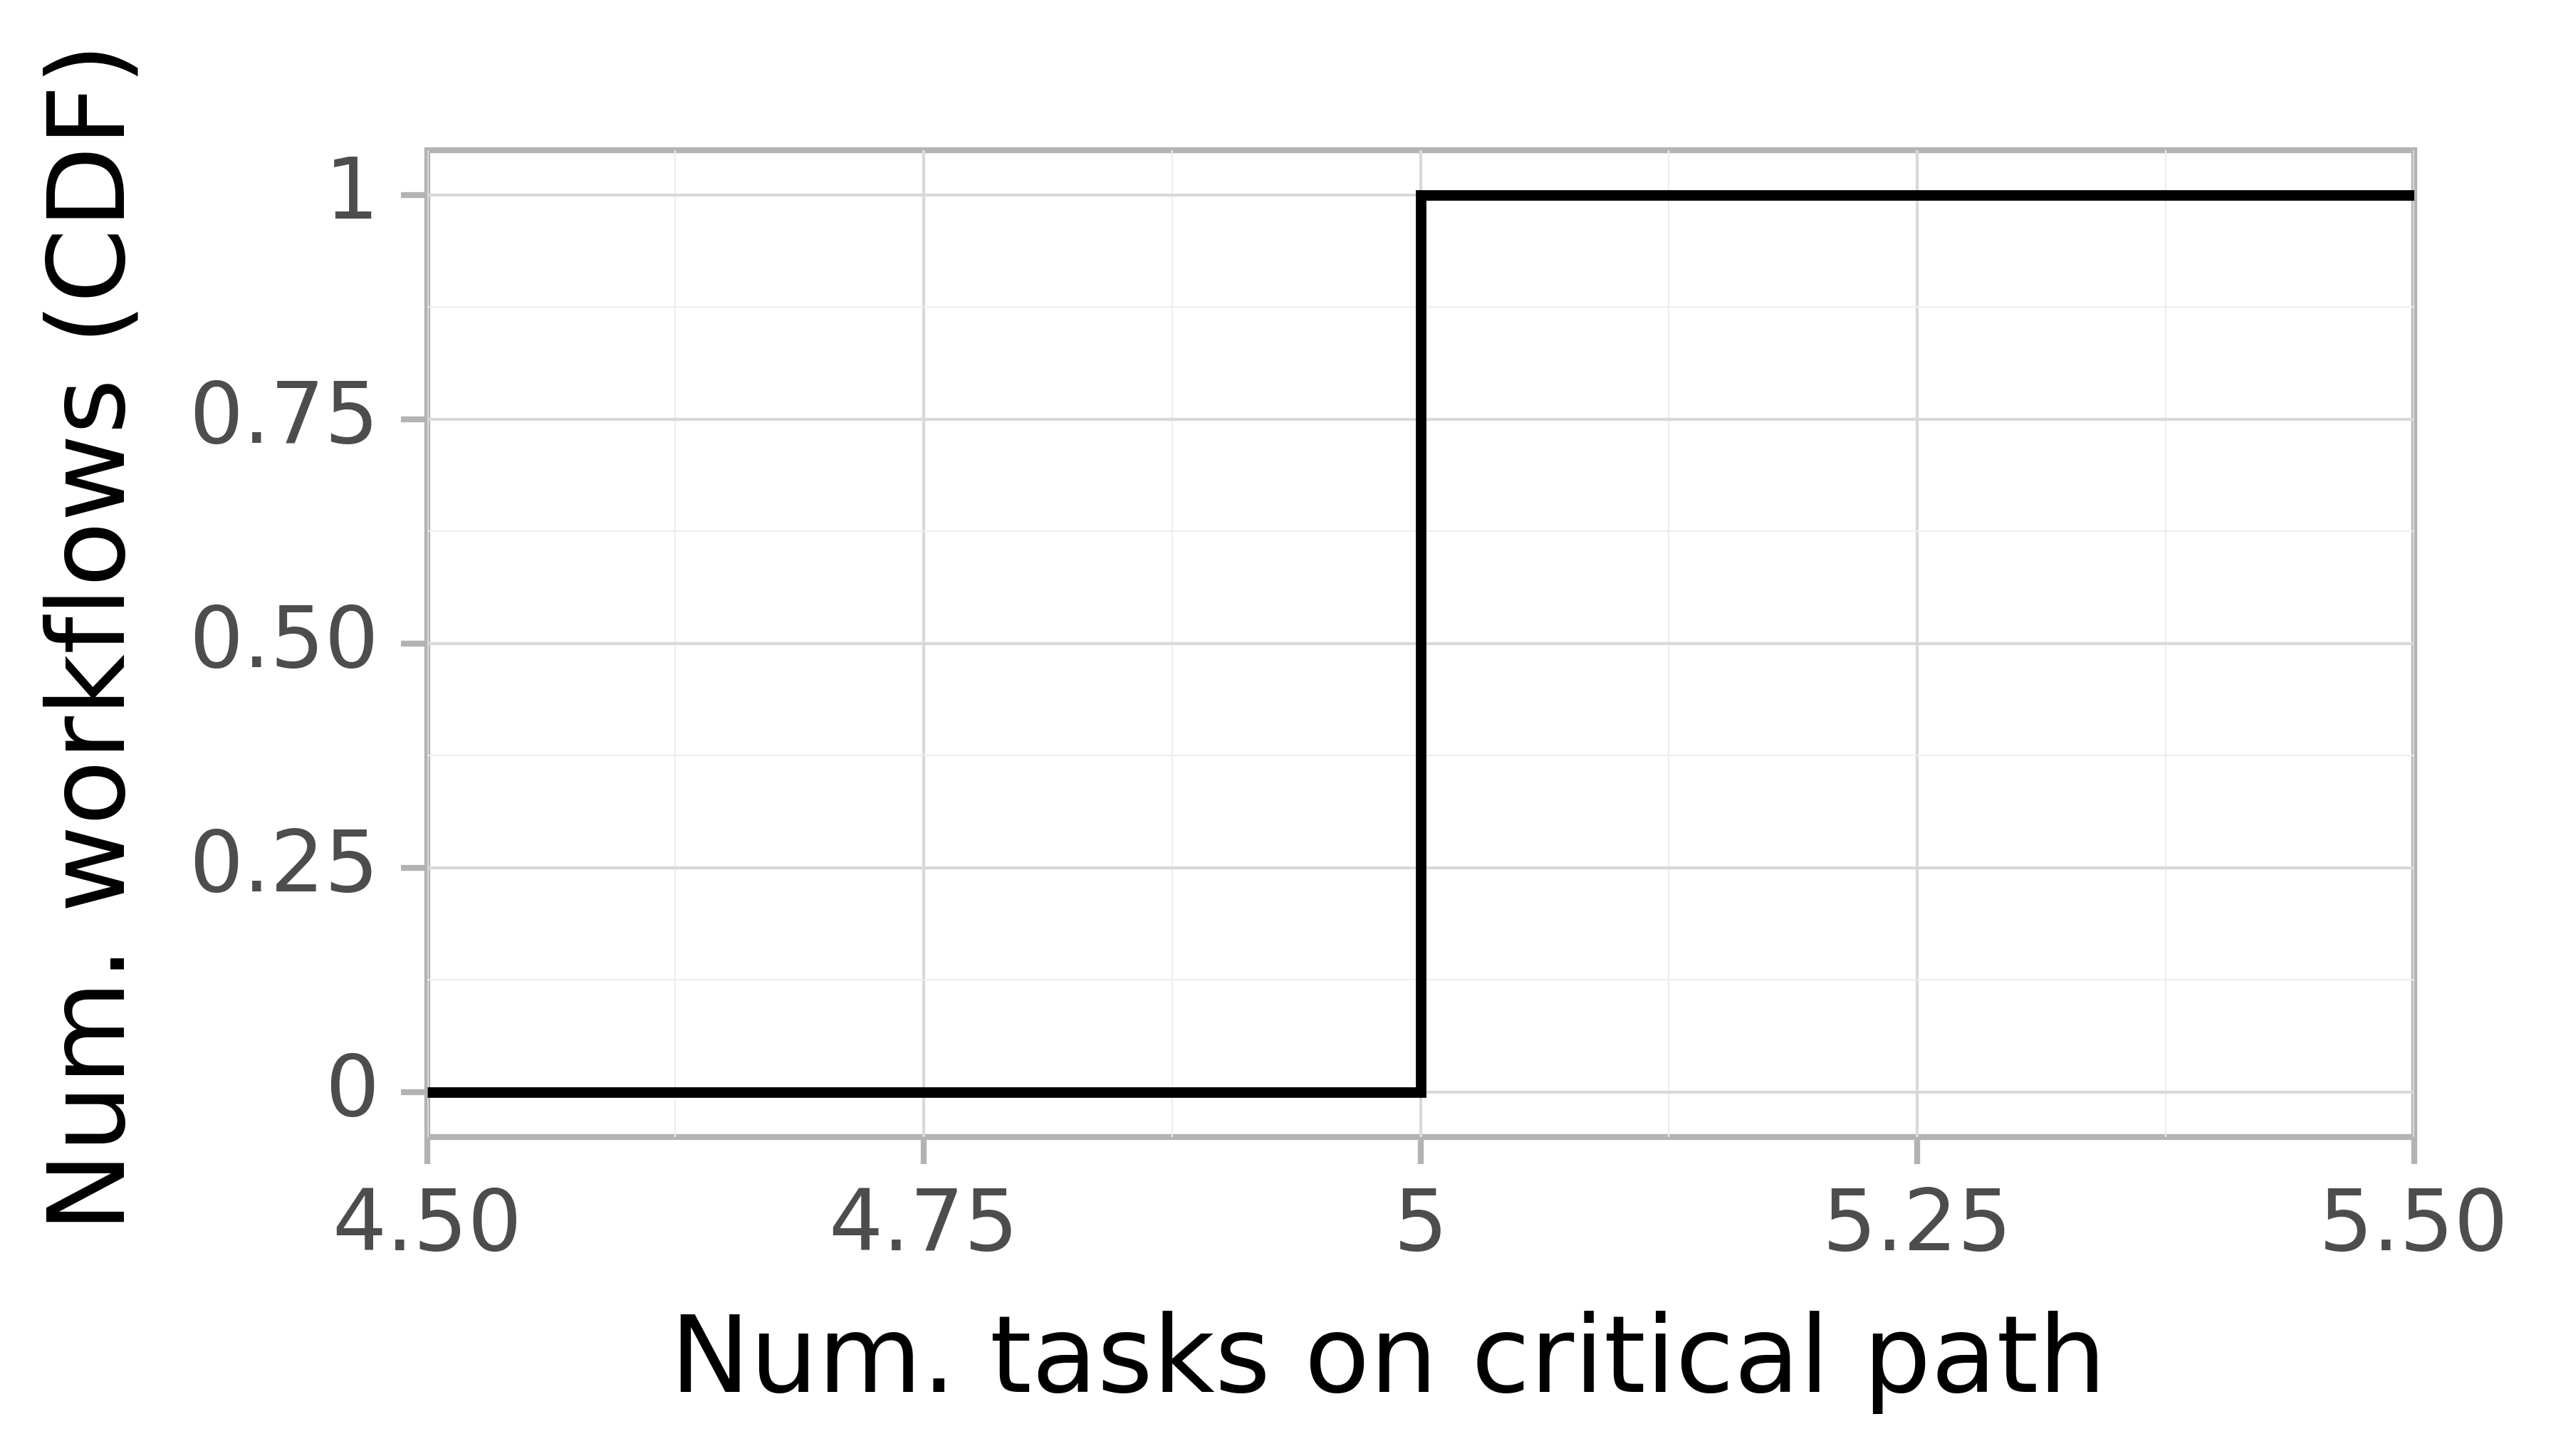 Job critical path task count graph for the askalon-new_ee11 trace.